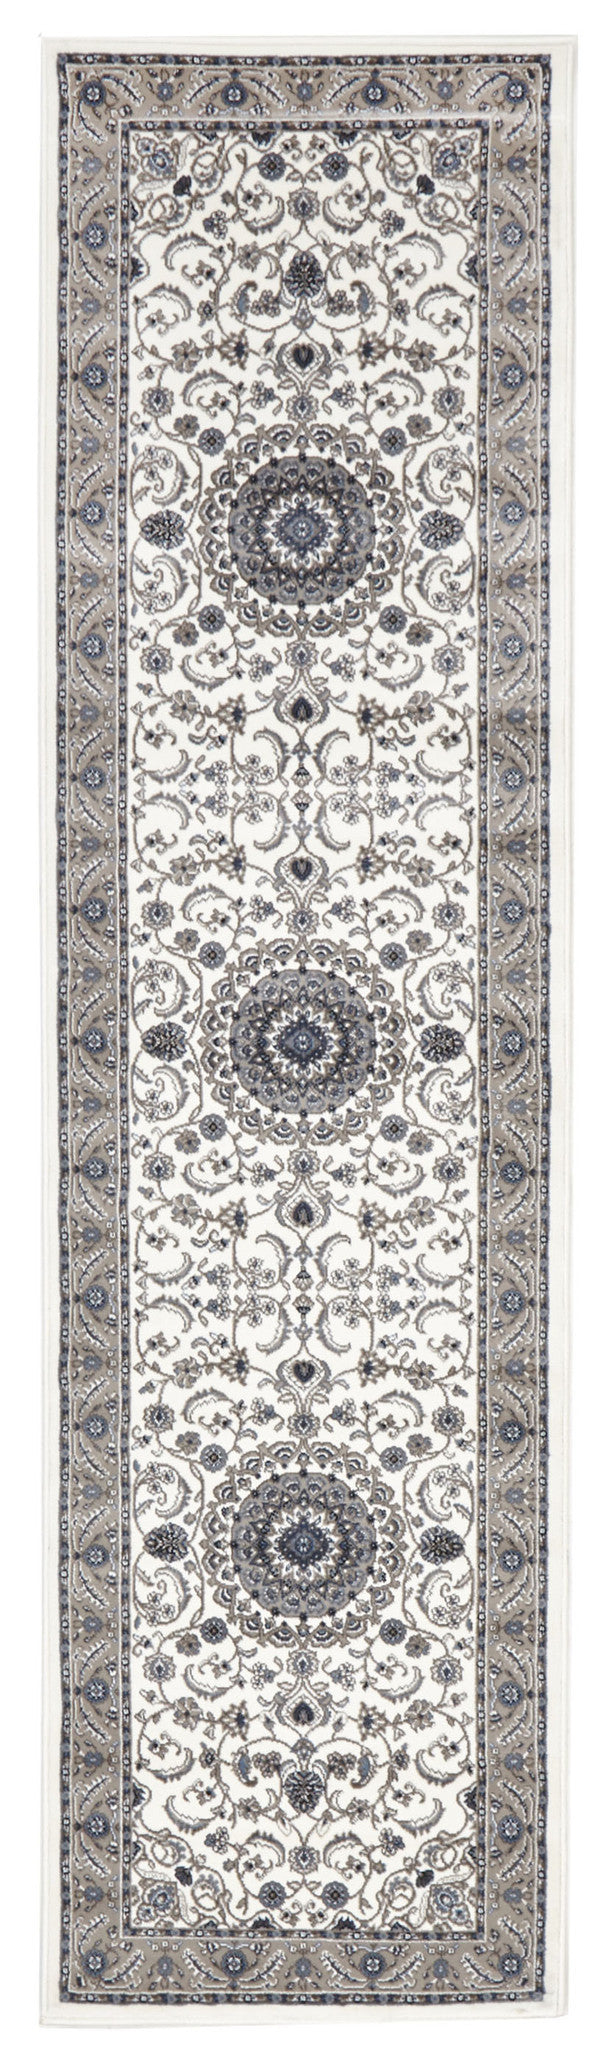 Sydney Medallion Rug White with Beige Border - aladdinrugs - 5